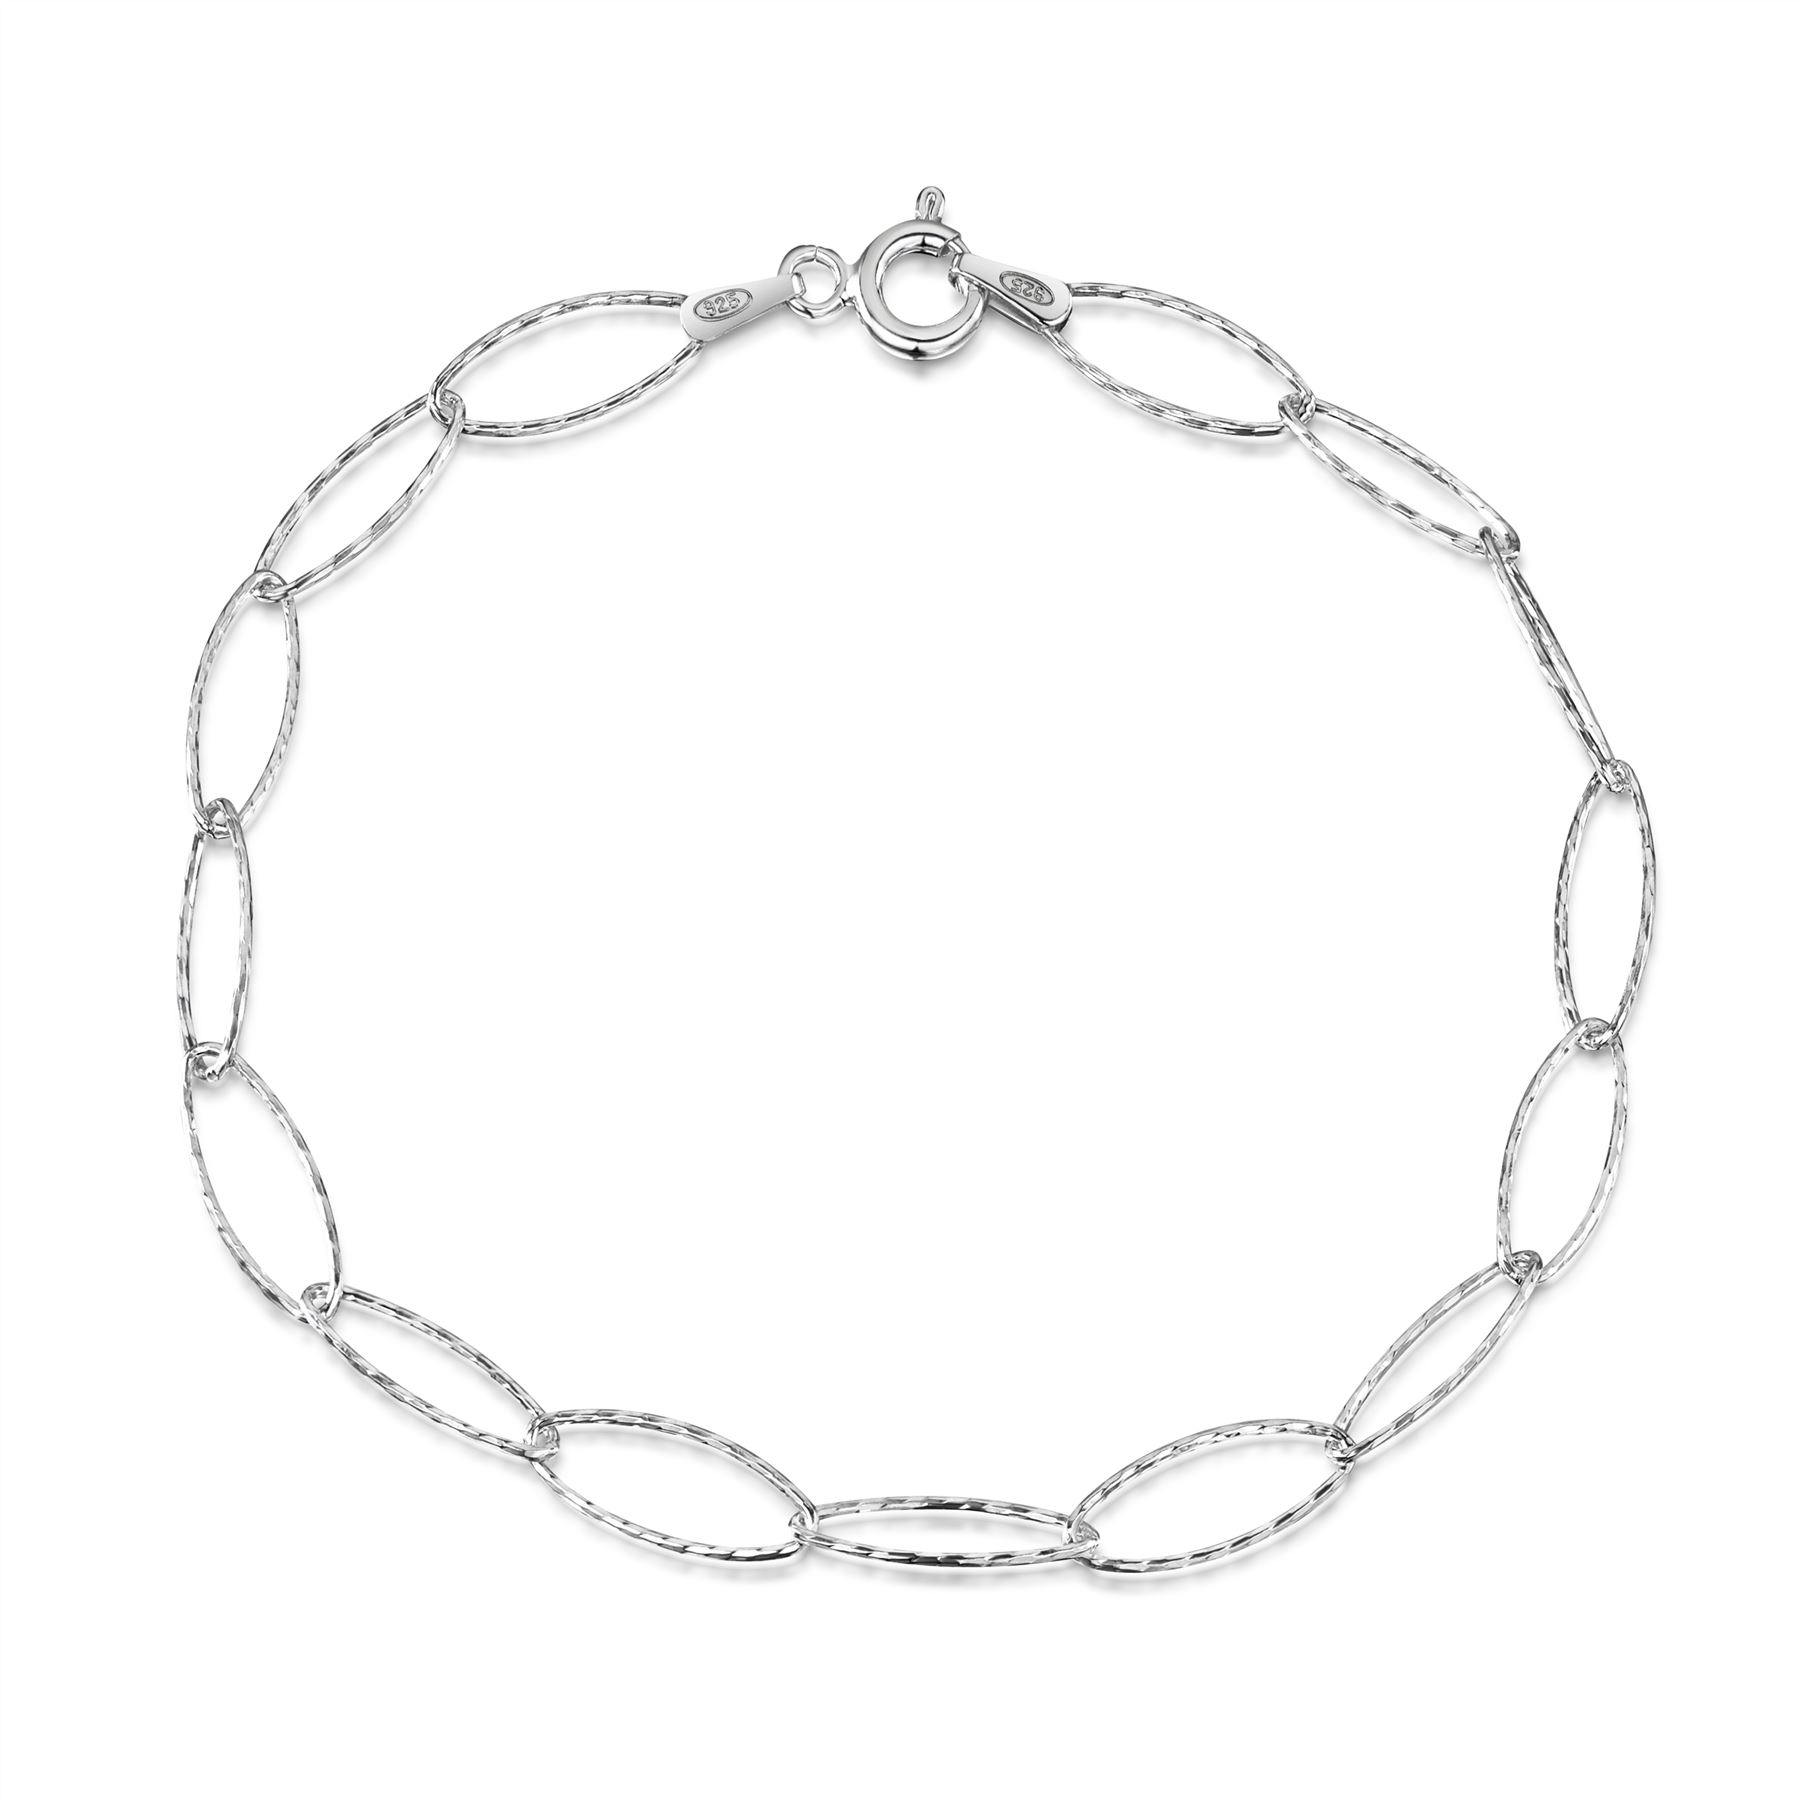 Amberta-Jewelry-Genuine-925-Sterling-Silver-Bracelet-Bangle-Chain-Made-in-Italy thumbnail 107